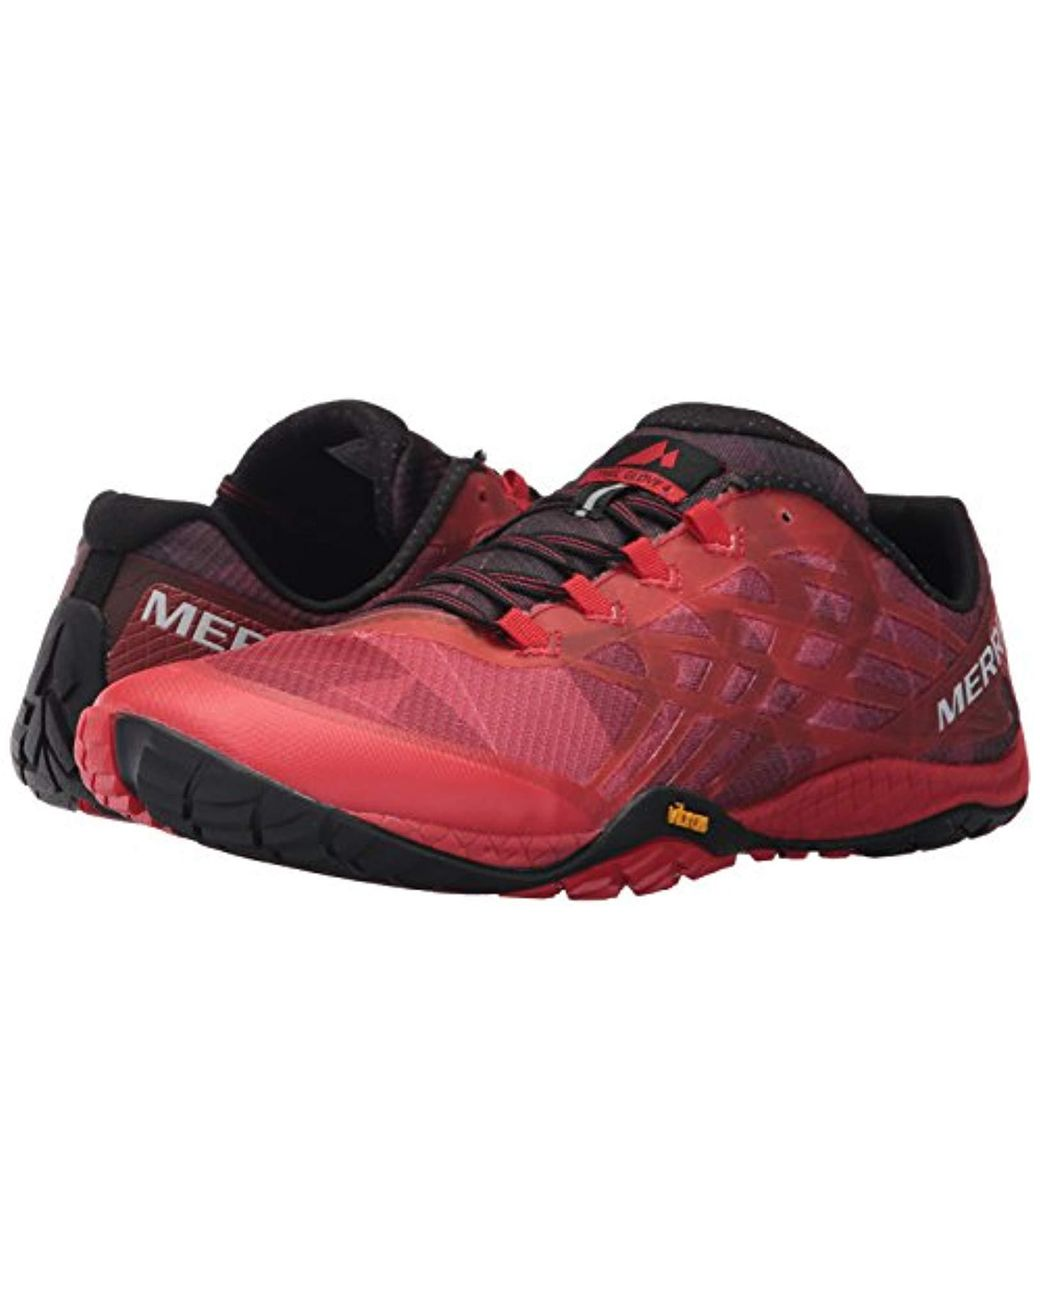 merrell moab fst gore-tex walking shoes - aw17 limited